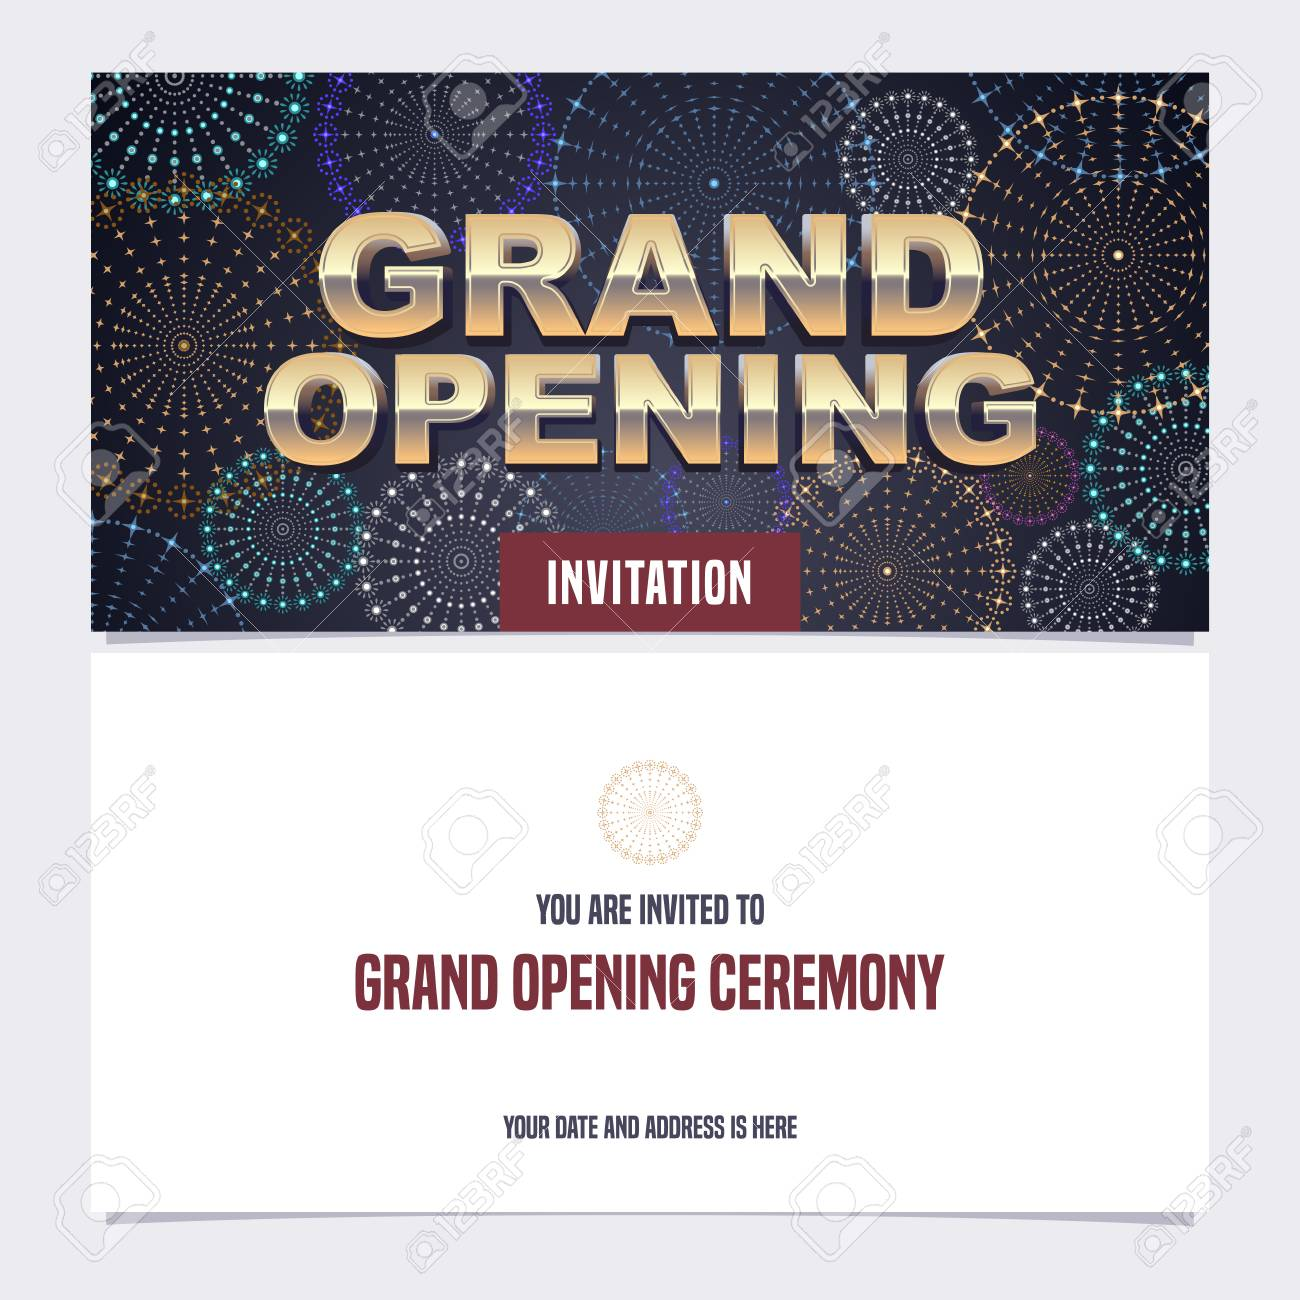 Grand opening vector illustration background invitation card banco de imagens grand opening vector illustration background invitation card invite to red ribbon cutting ceremony with template text stopboris Image collections